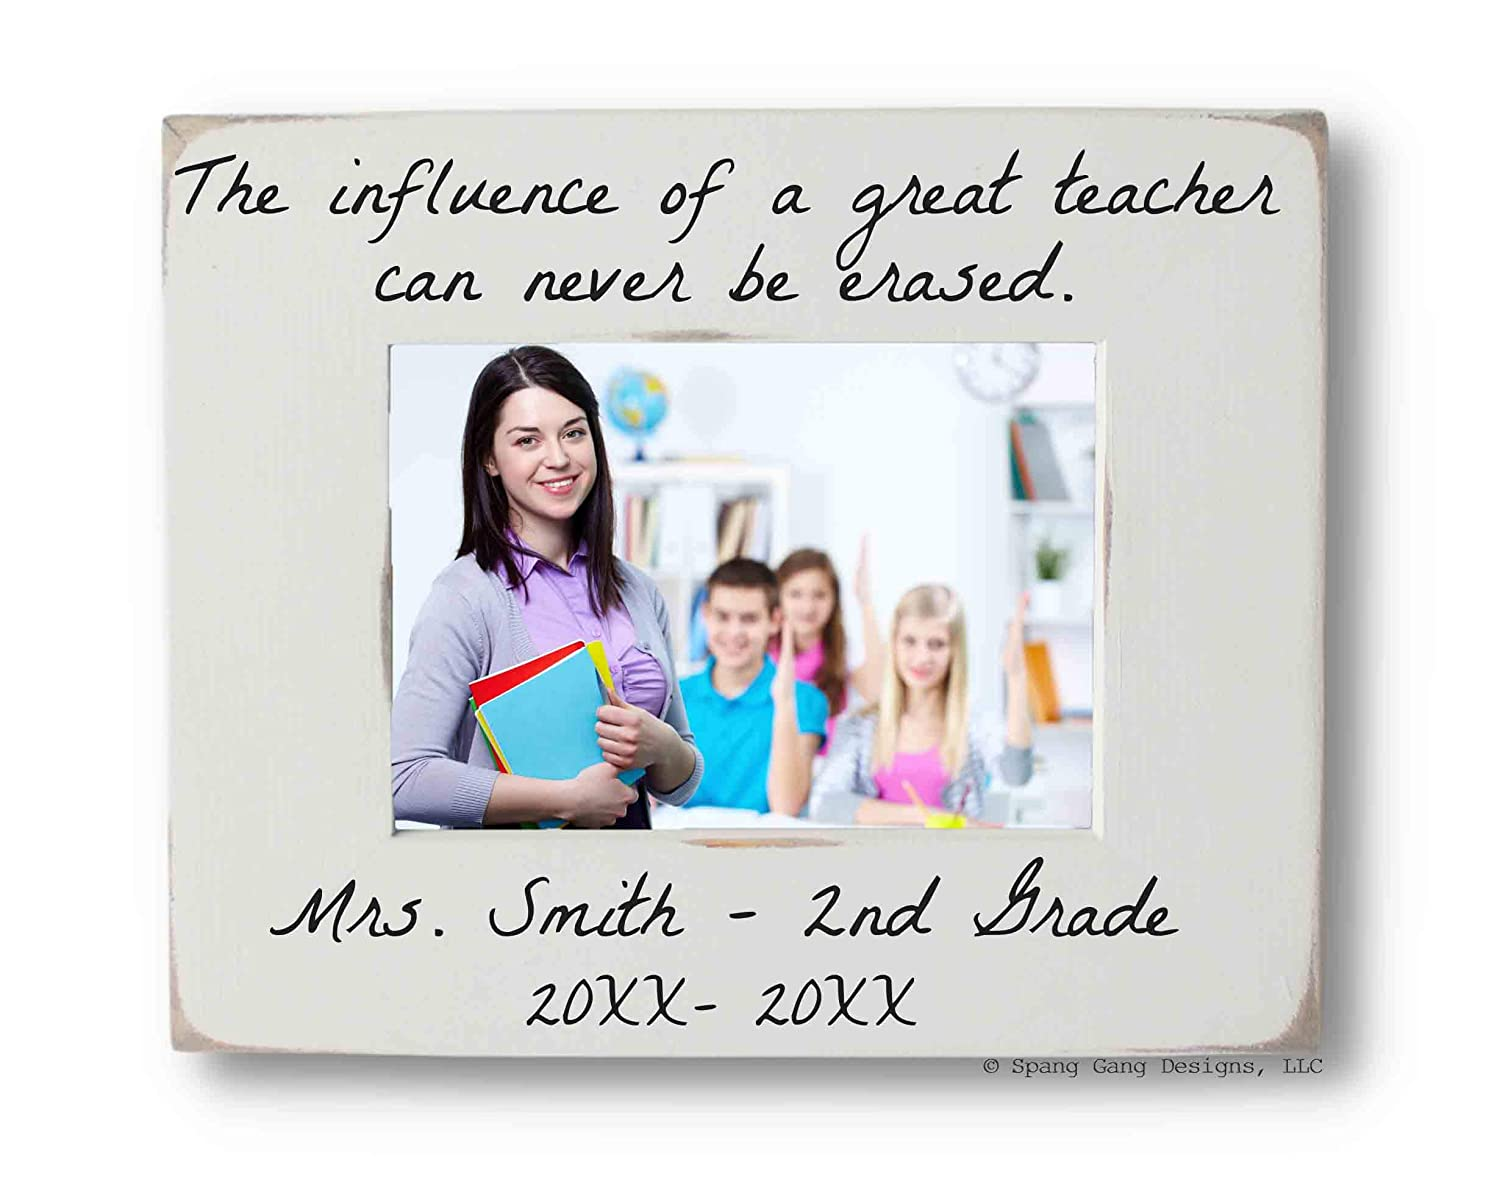 Personalized Lowest price challenge Picture Frame for Teacher fits or Max 52% OFF s 5x7 4x6 photo